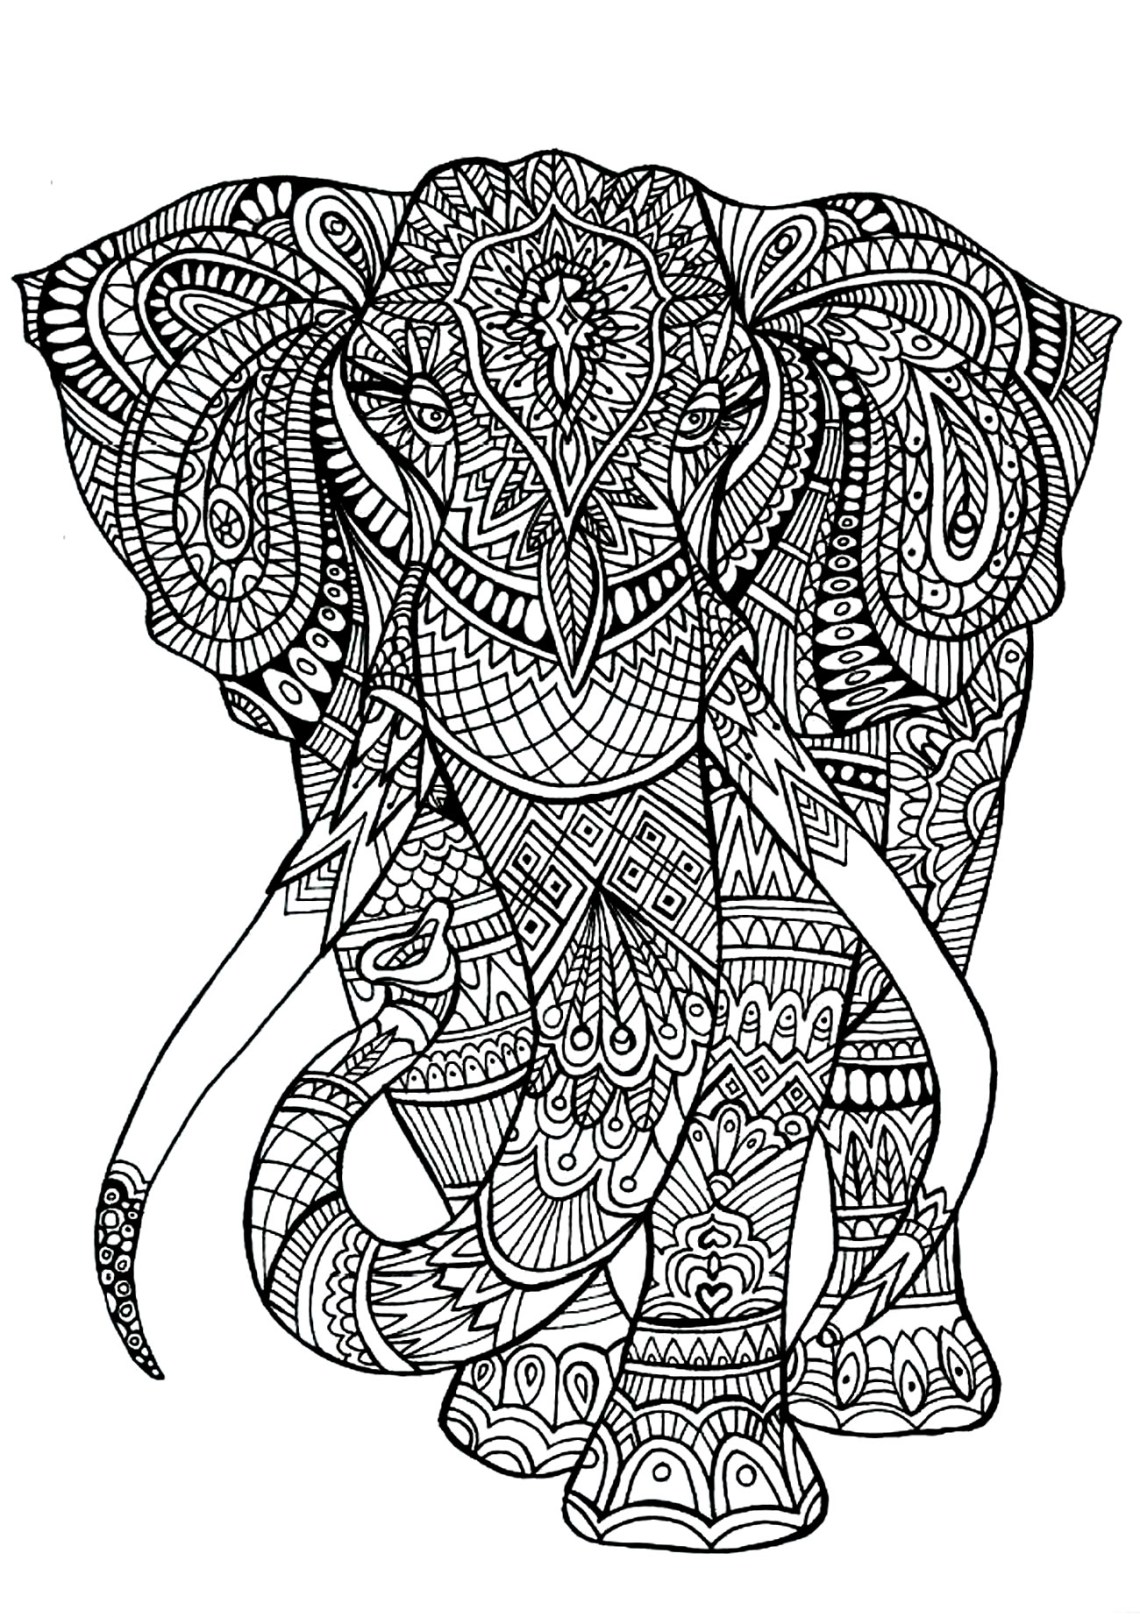 Elephant patterns | Animals - Coloring pages for adults ... | free printable coloring pages for adults animals